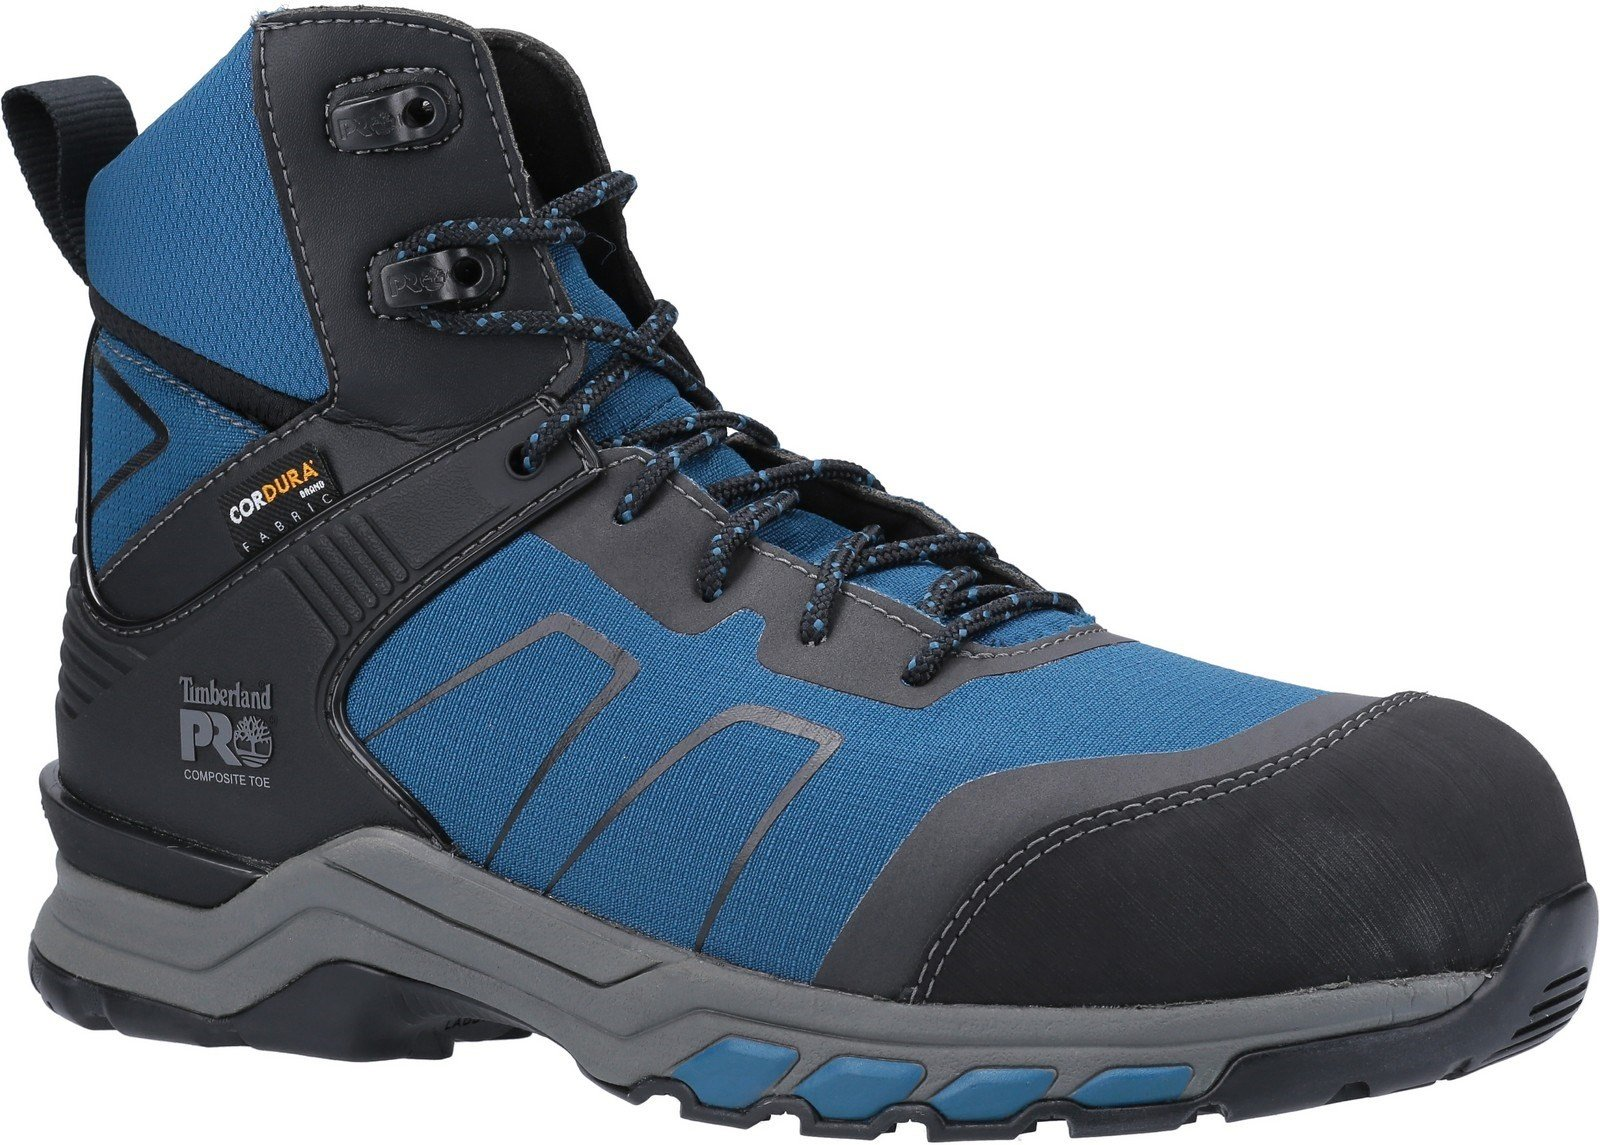 Timberland Pro Men's Hypercharge Safety Work Boot Various Colours 30947 - Teal/Black 12